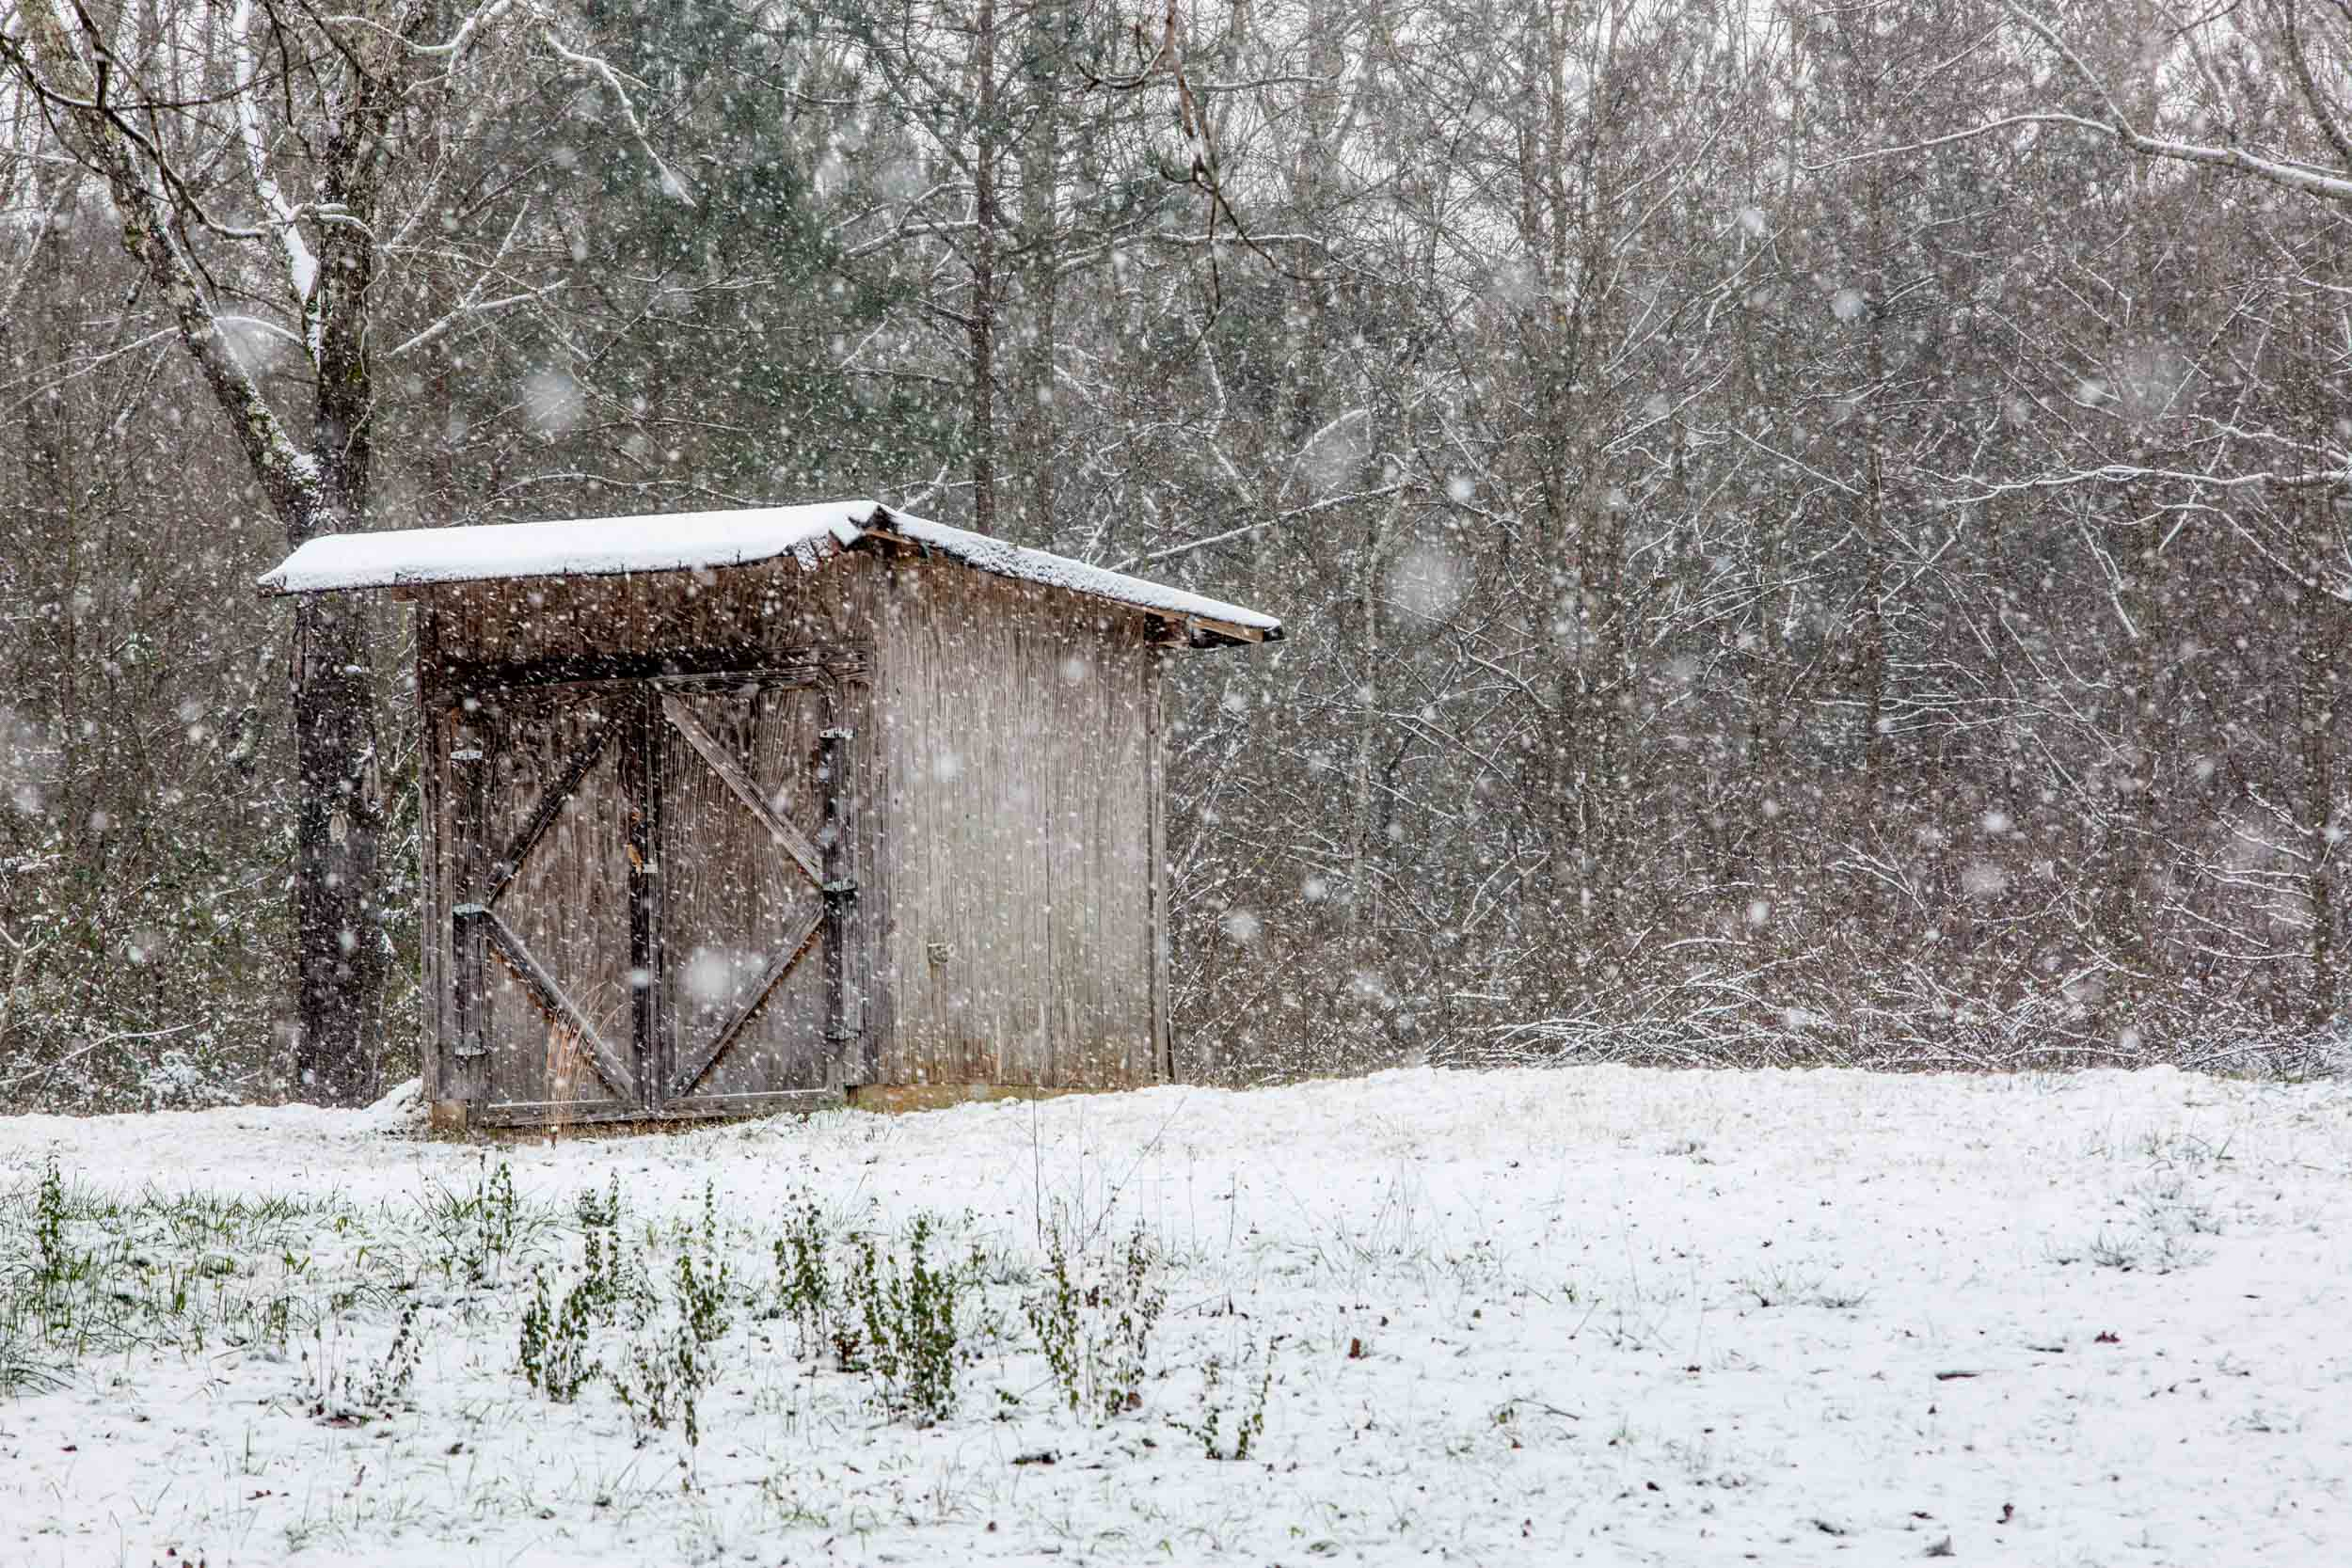 Snow falls on a shed during a light snow fall, Saturday, Jan. 23, 2016, in Woodstock, Ga.